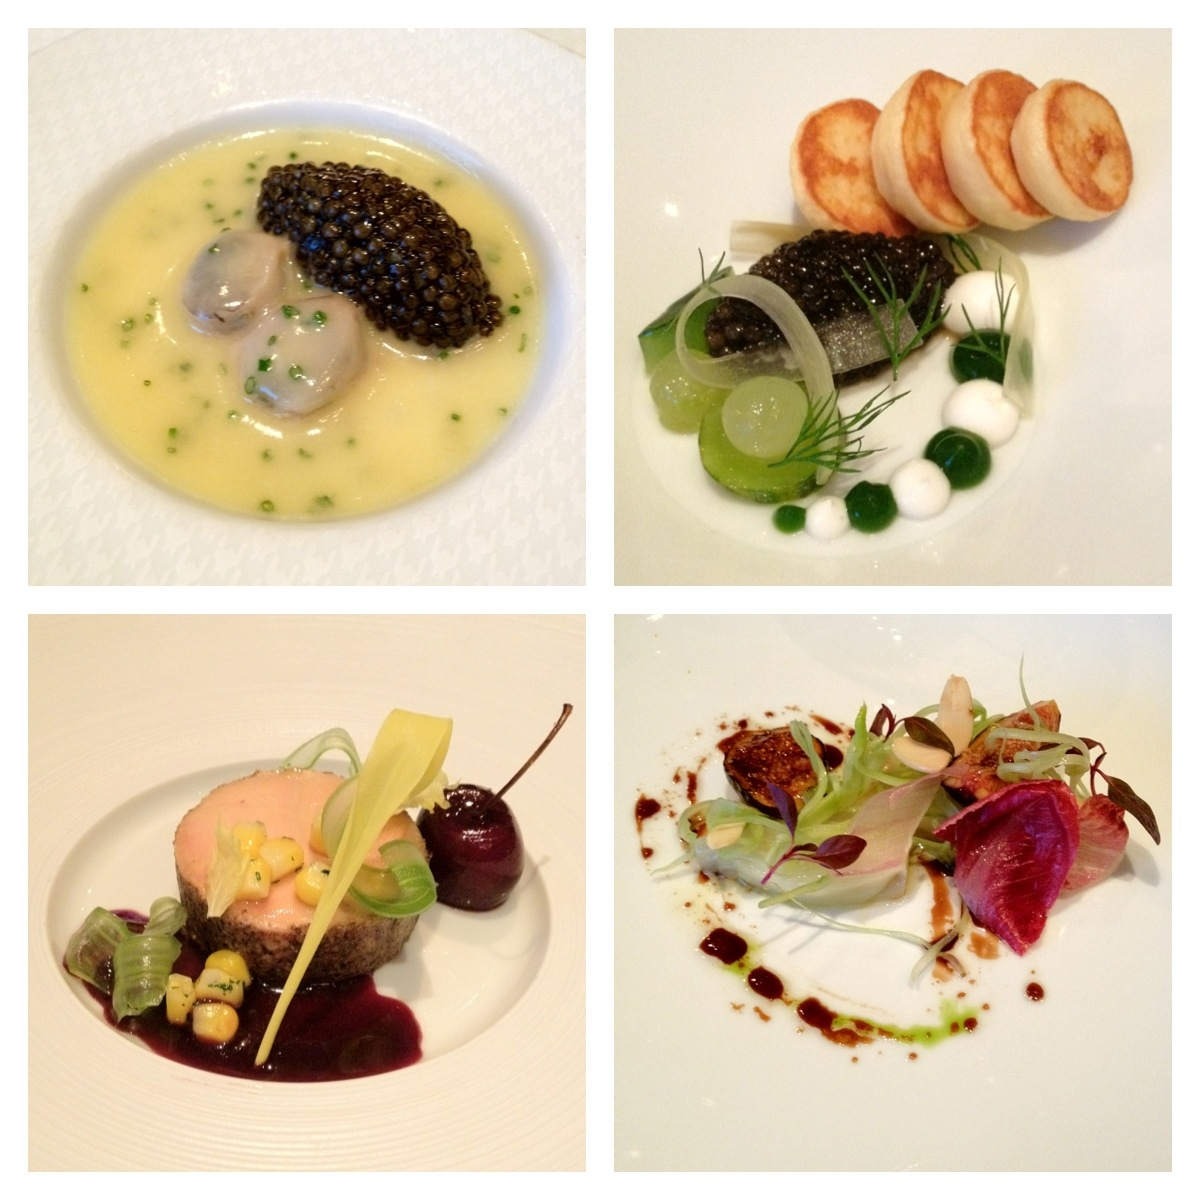 Creative food at Per Se from The Happily Ever After Project